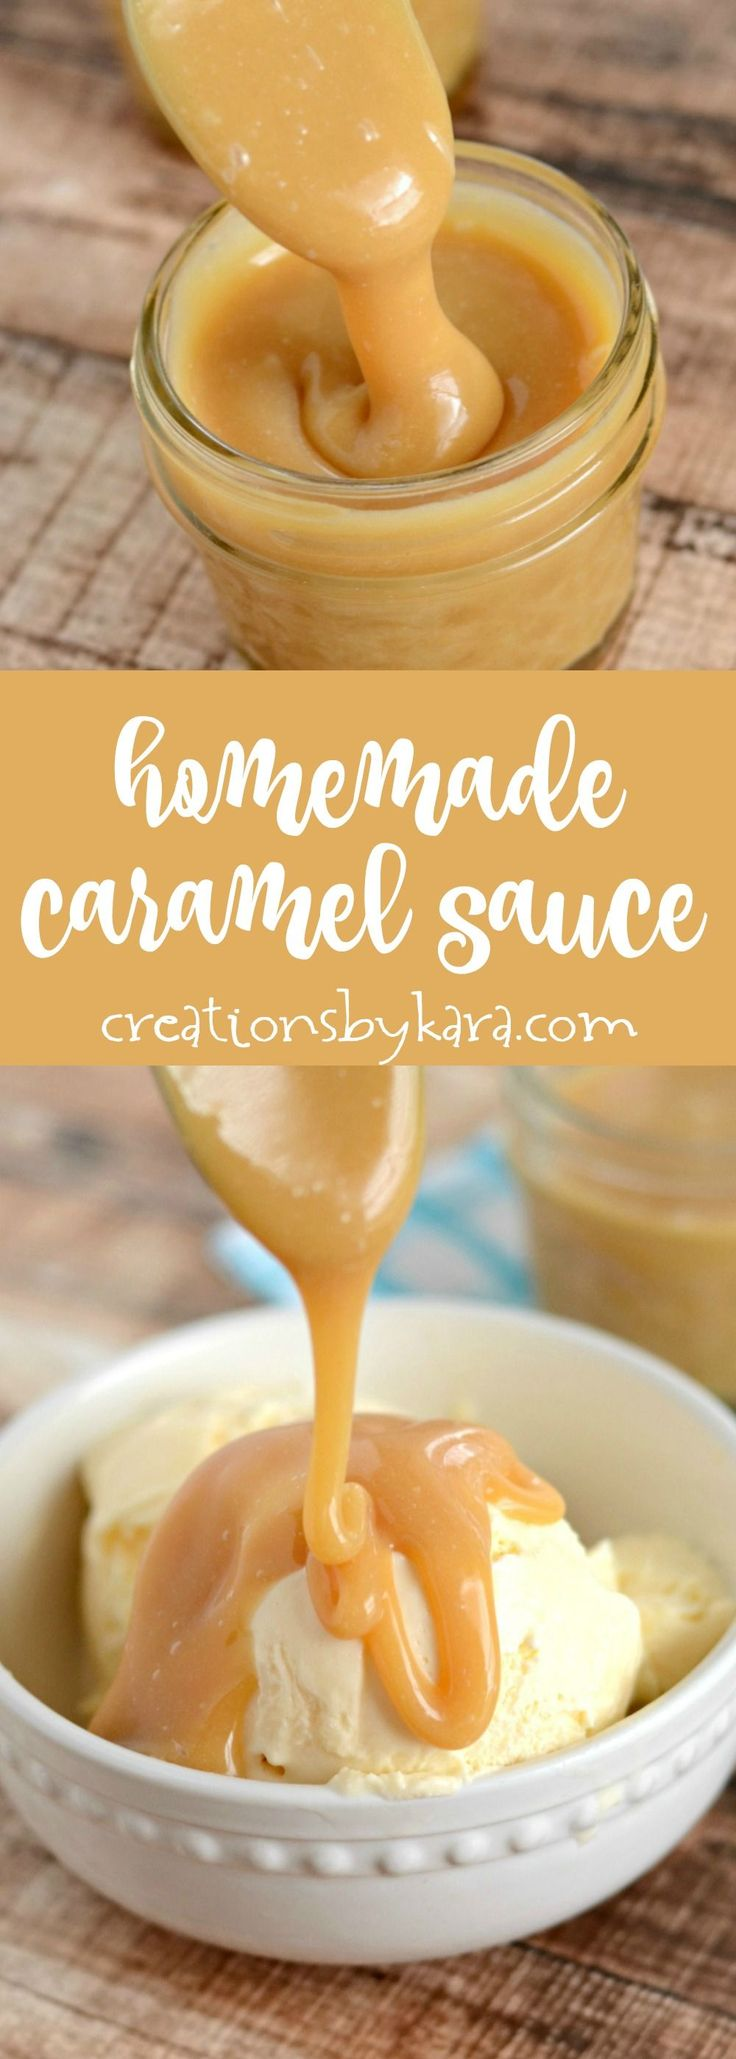 Homemade Caramel Sauce - Copycat Leatherby's caramel ice cream sauce. This rich and creamy caramel sauce is incredible! from creationsbykara.com  Also check out my website www.dailysurprises.co.uk